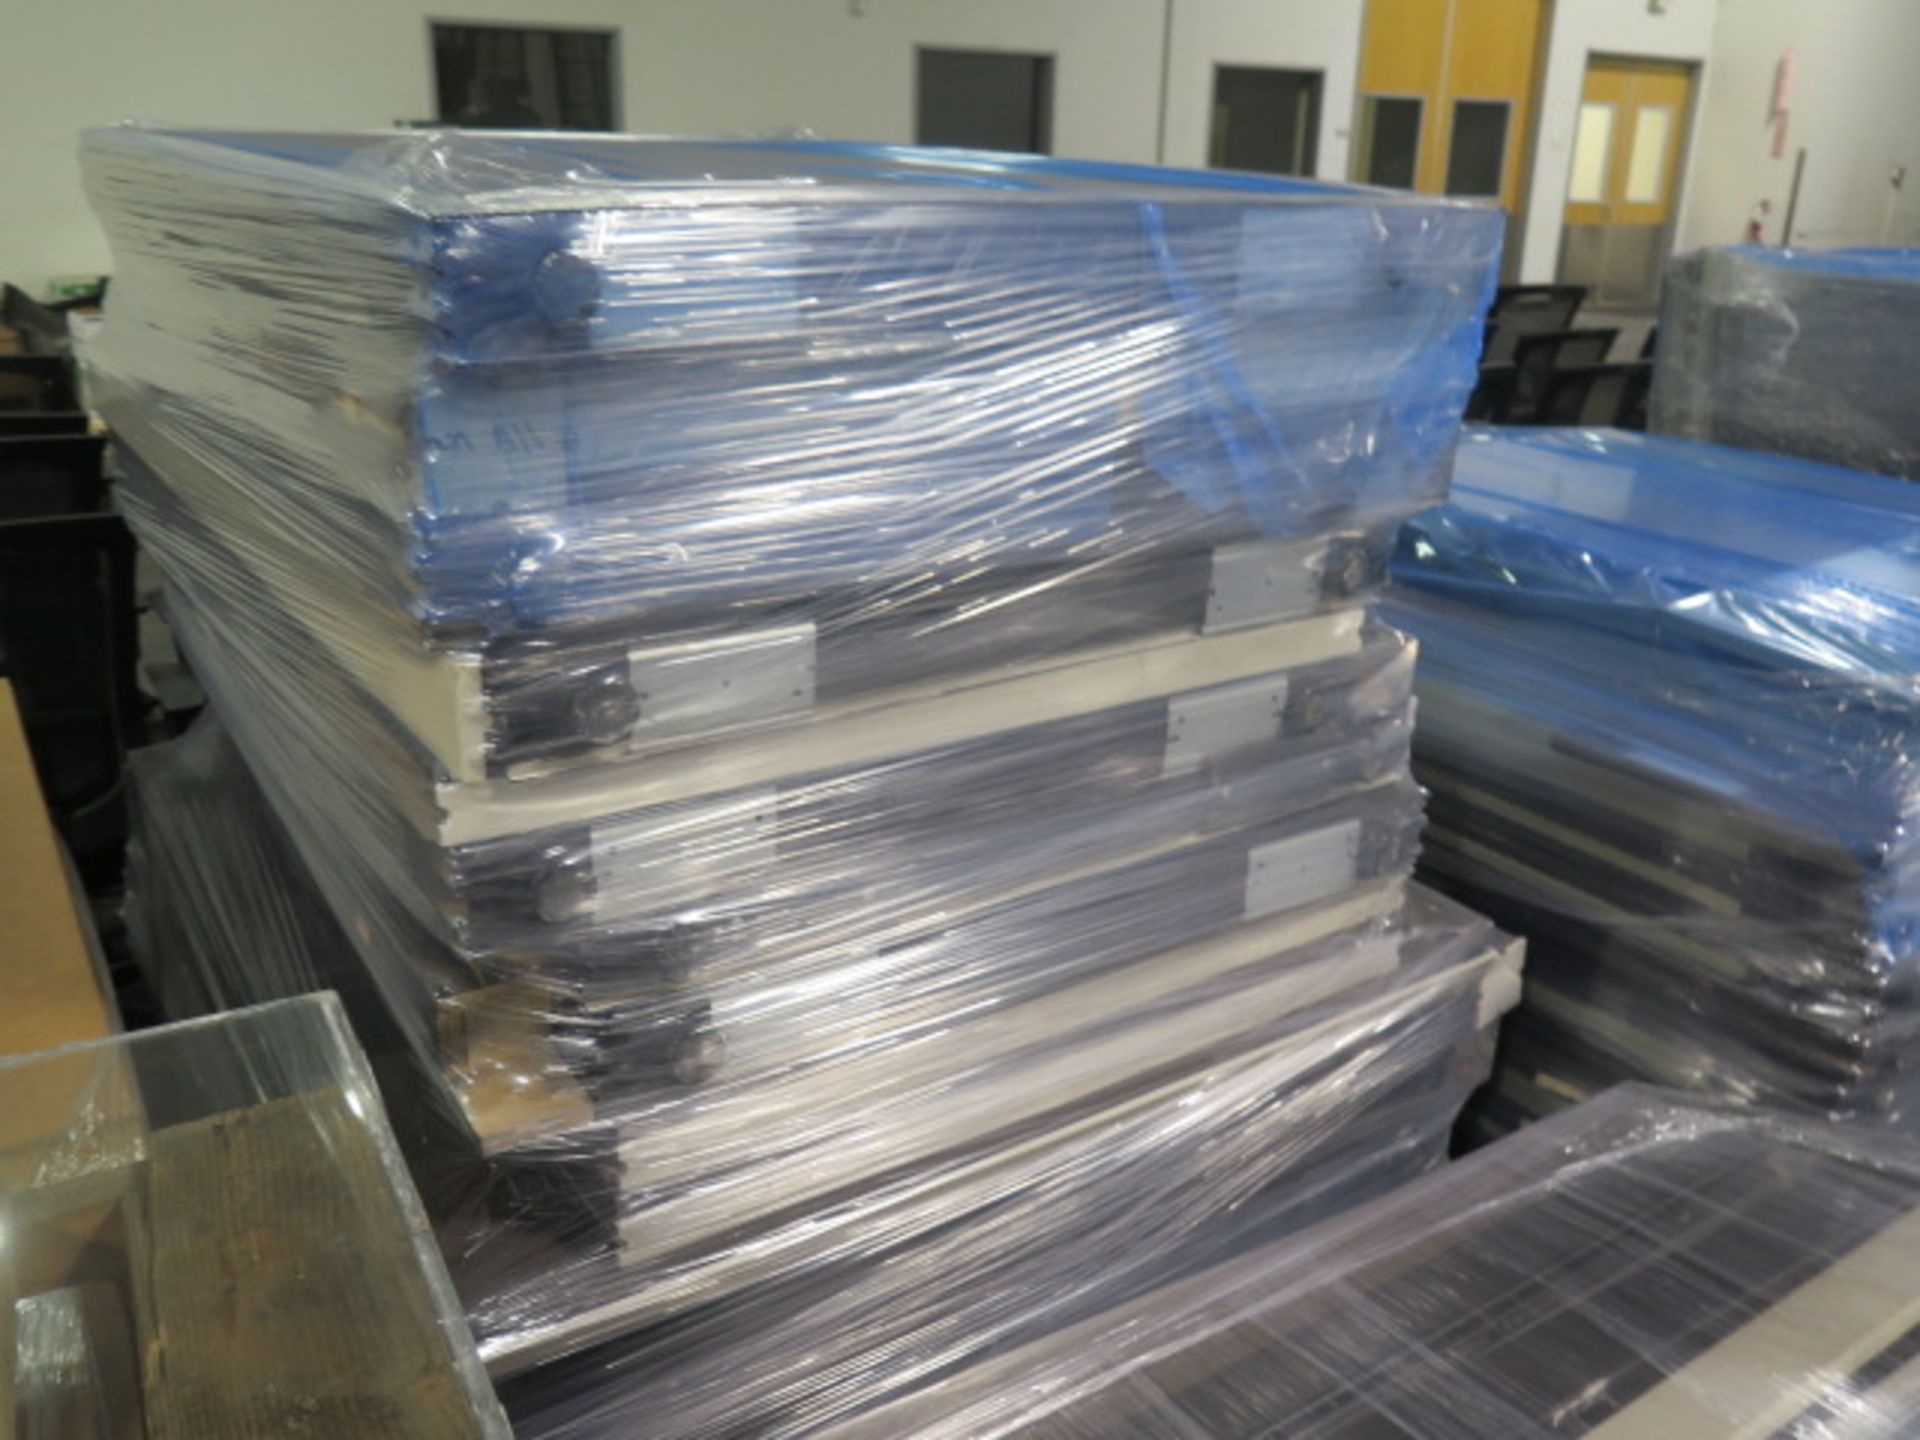 Large Quantity of Office Partitions, Desks, File Cabinets and Storage Cabinets (SOLD AS-IS - NO WARA - Image 20 of 24